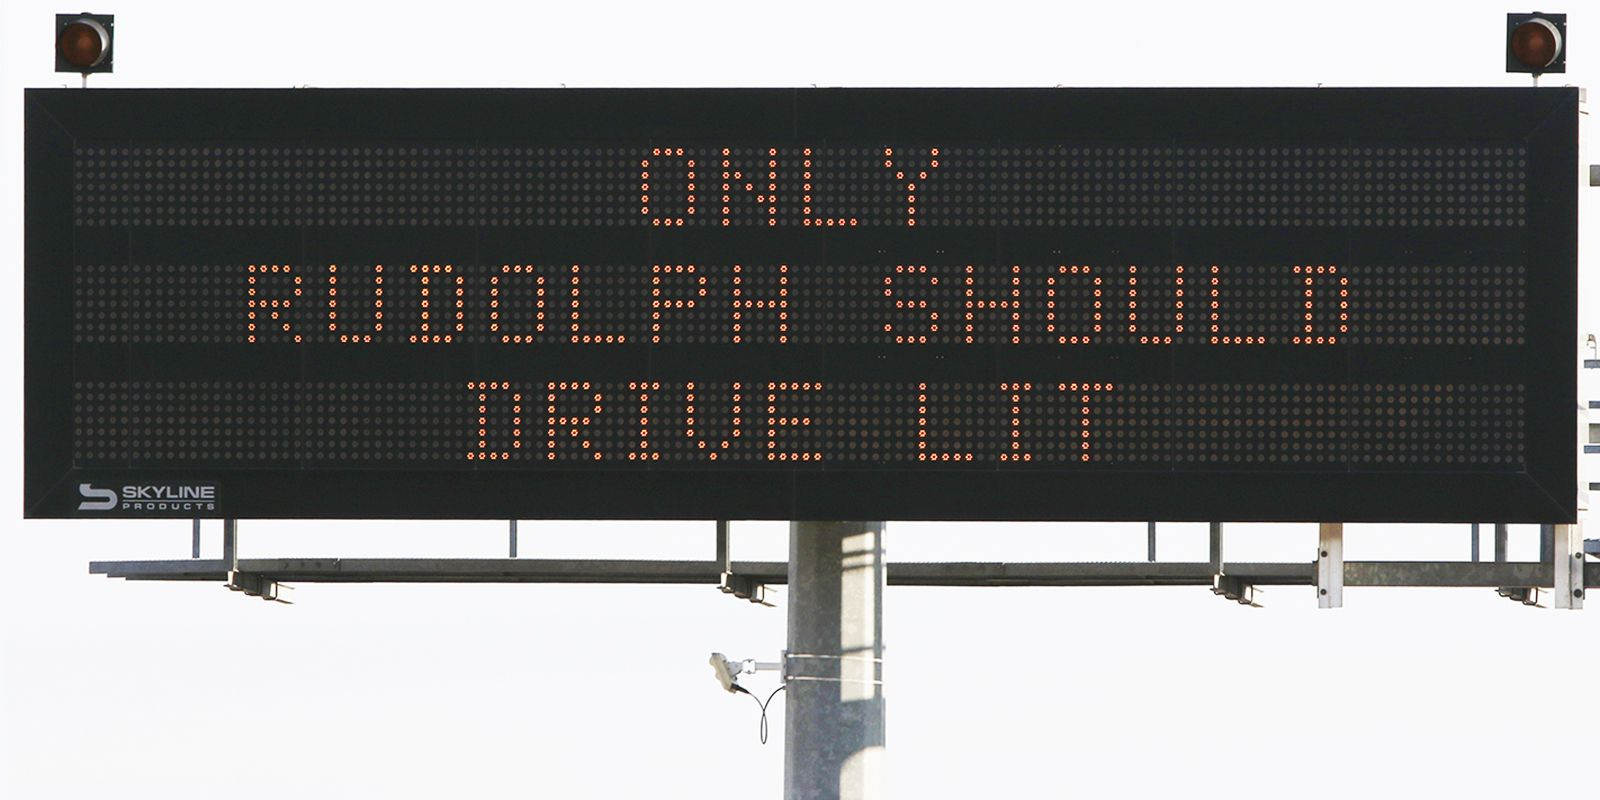 "TXDOT's Christmas sign"" ONLY RUDOLPH SHOULD DRIVE LIT, DRINK AND DRIVE YULE BE SORRY"" on Highway 67 in Dallas on Dec. 25, 2019. (Irwin Thompson/The Dallas Morning News."